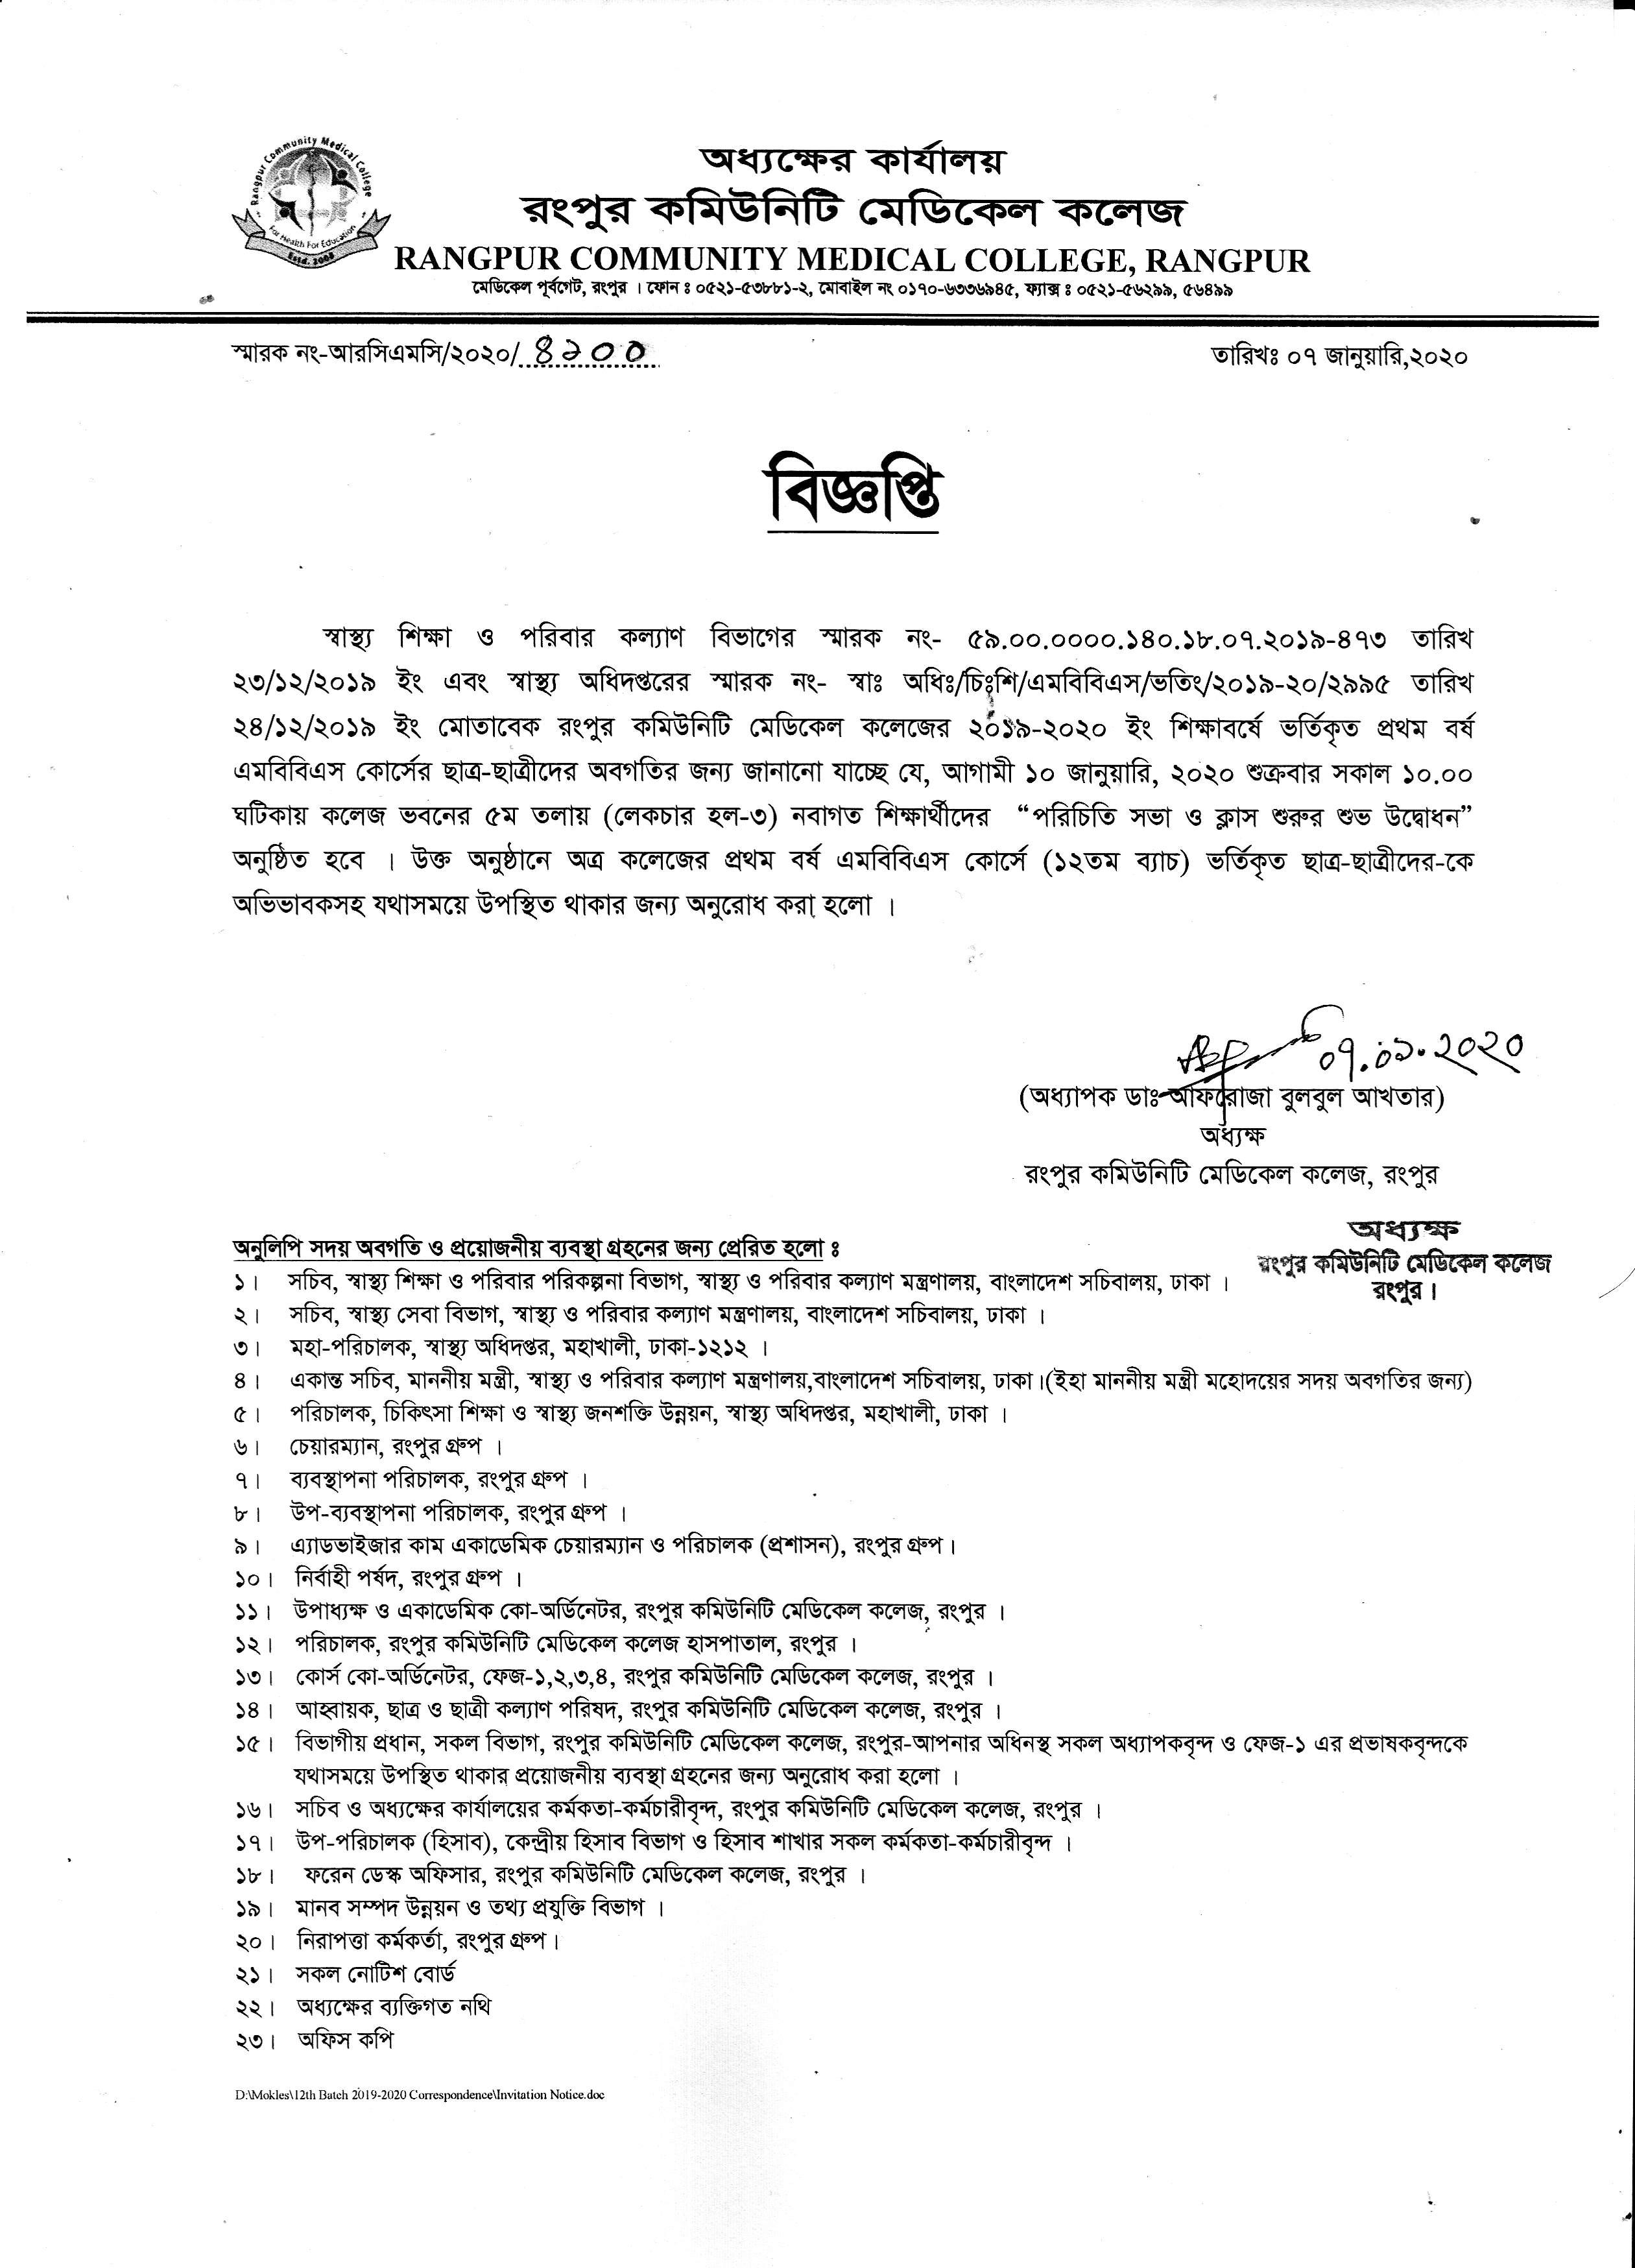 notice for the orientation program of rangpur community medical college (RCMC) for the academic year of 2019-2020